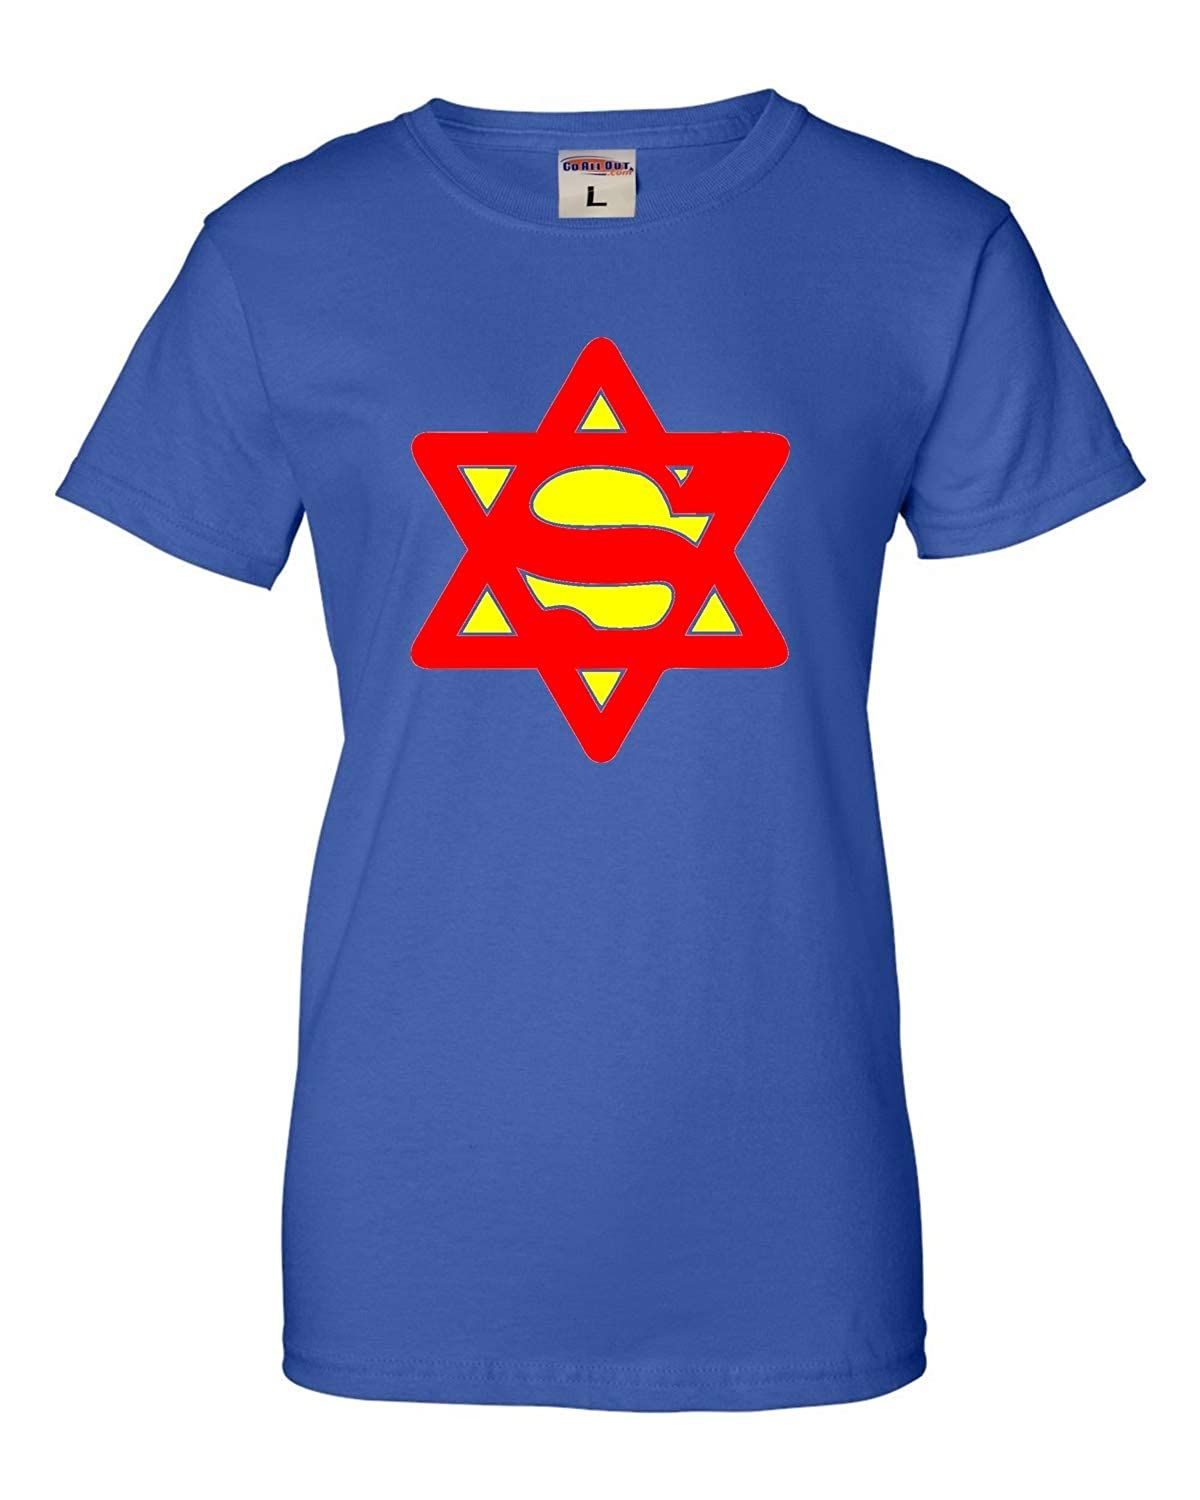 a3d88e4ce3 Amazon.com: Go All Out Womens Super Jew Funny Jewish T-Shirt: Clothing